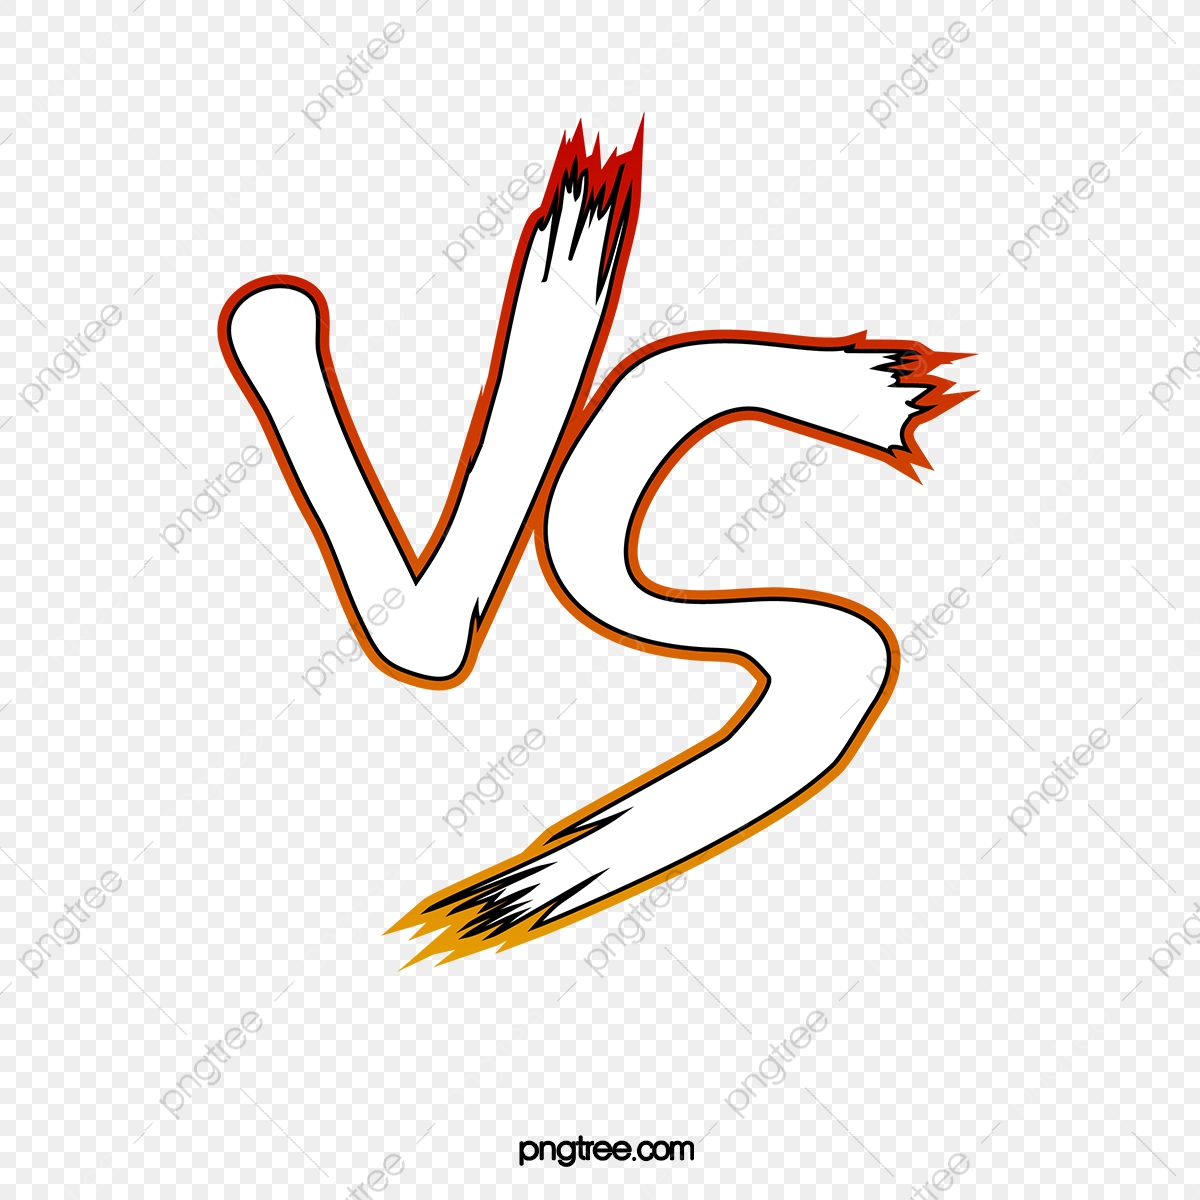 / Vs Vs Showdown Vs Calligraphy Pk Duel Vs Png Transparent